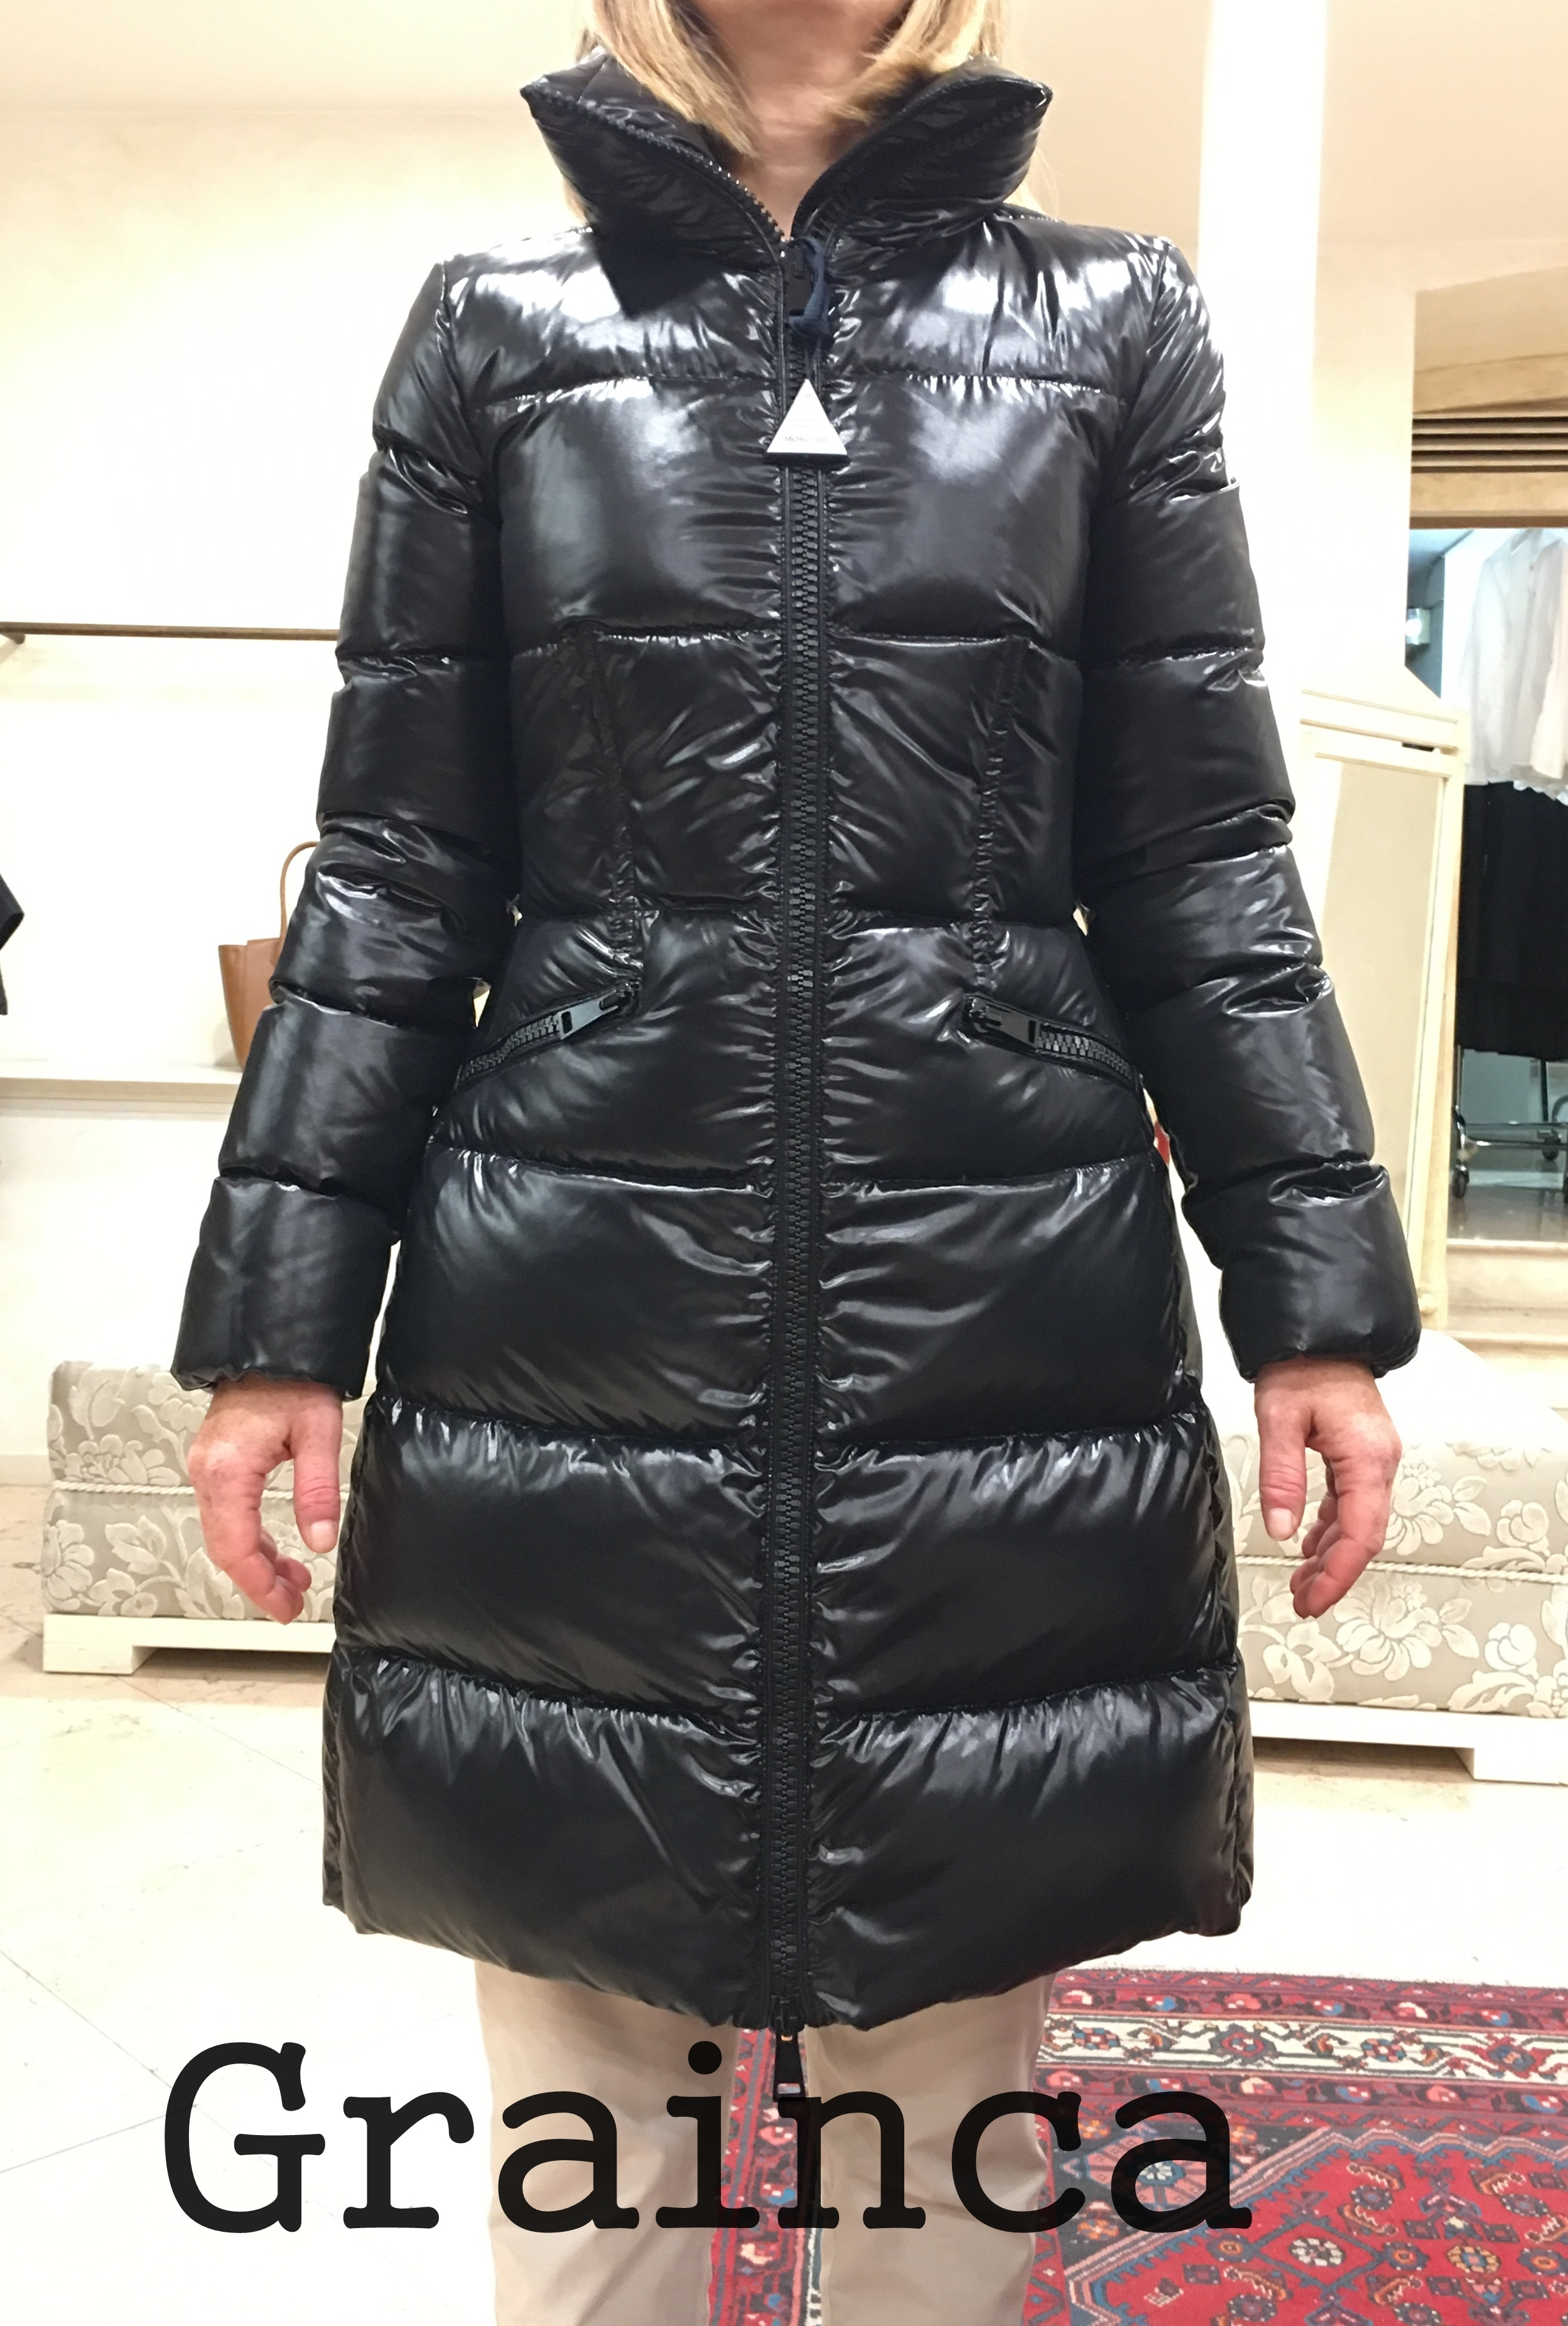 MONCLER★17/18AW  デザインが素敵JASMINUM★ブラック・関税込み